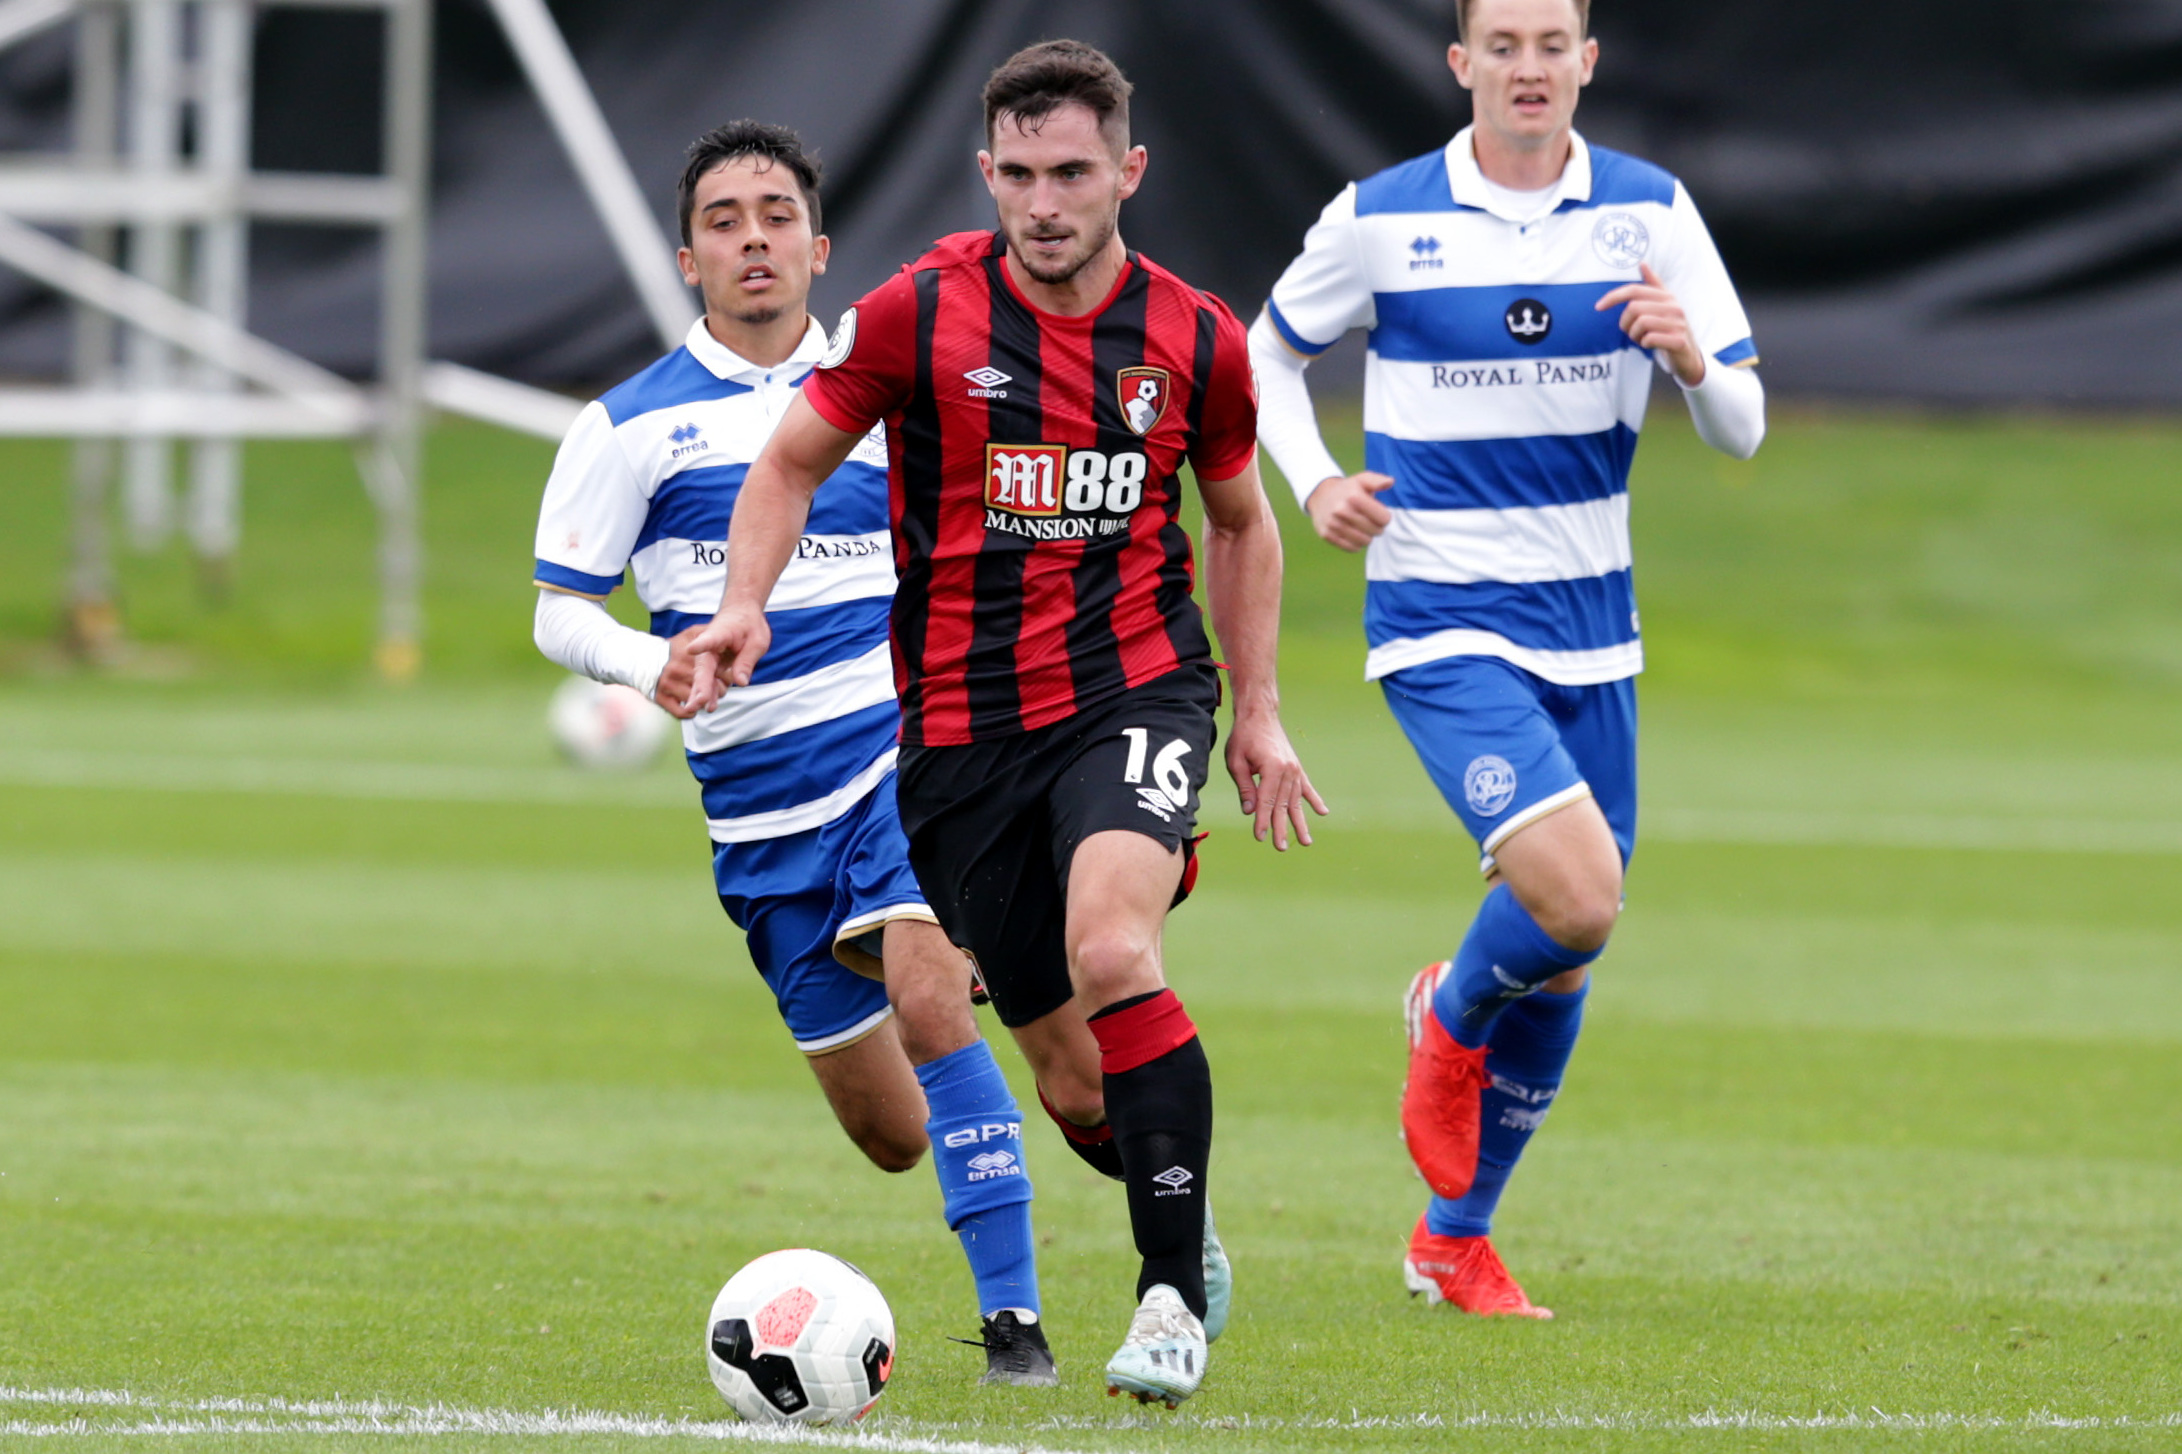 'Hopefully I can put it all behind me now and focus on the future' - Lewis Cook on his return from injury